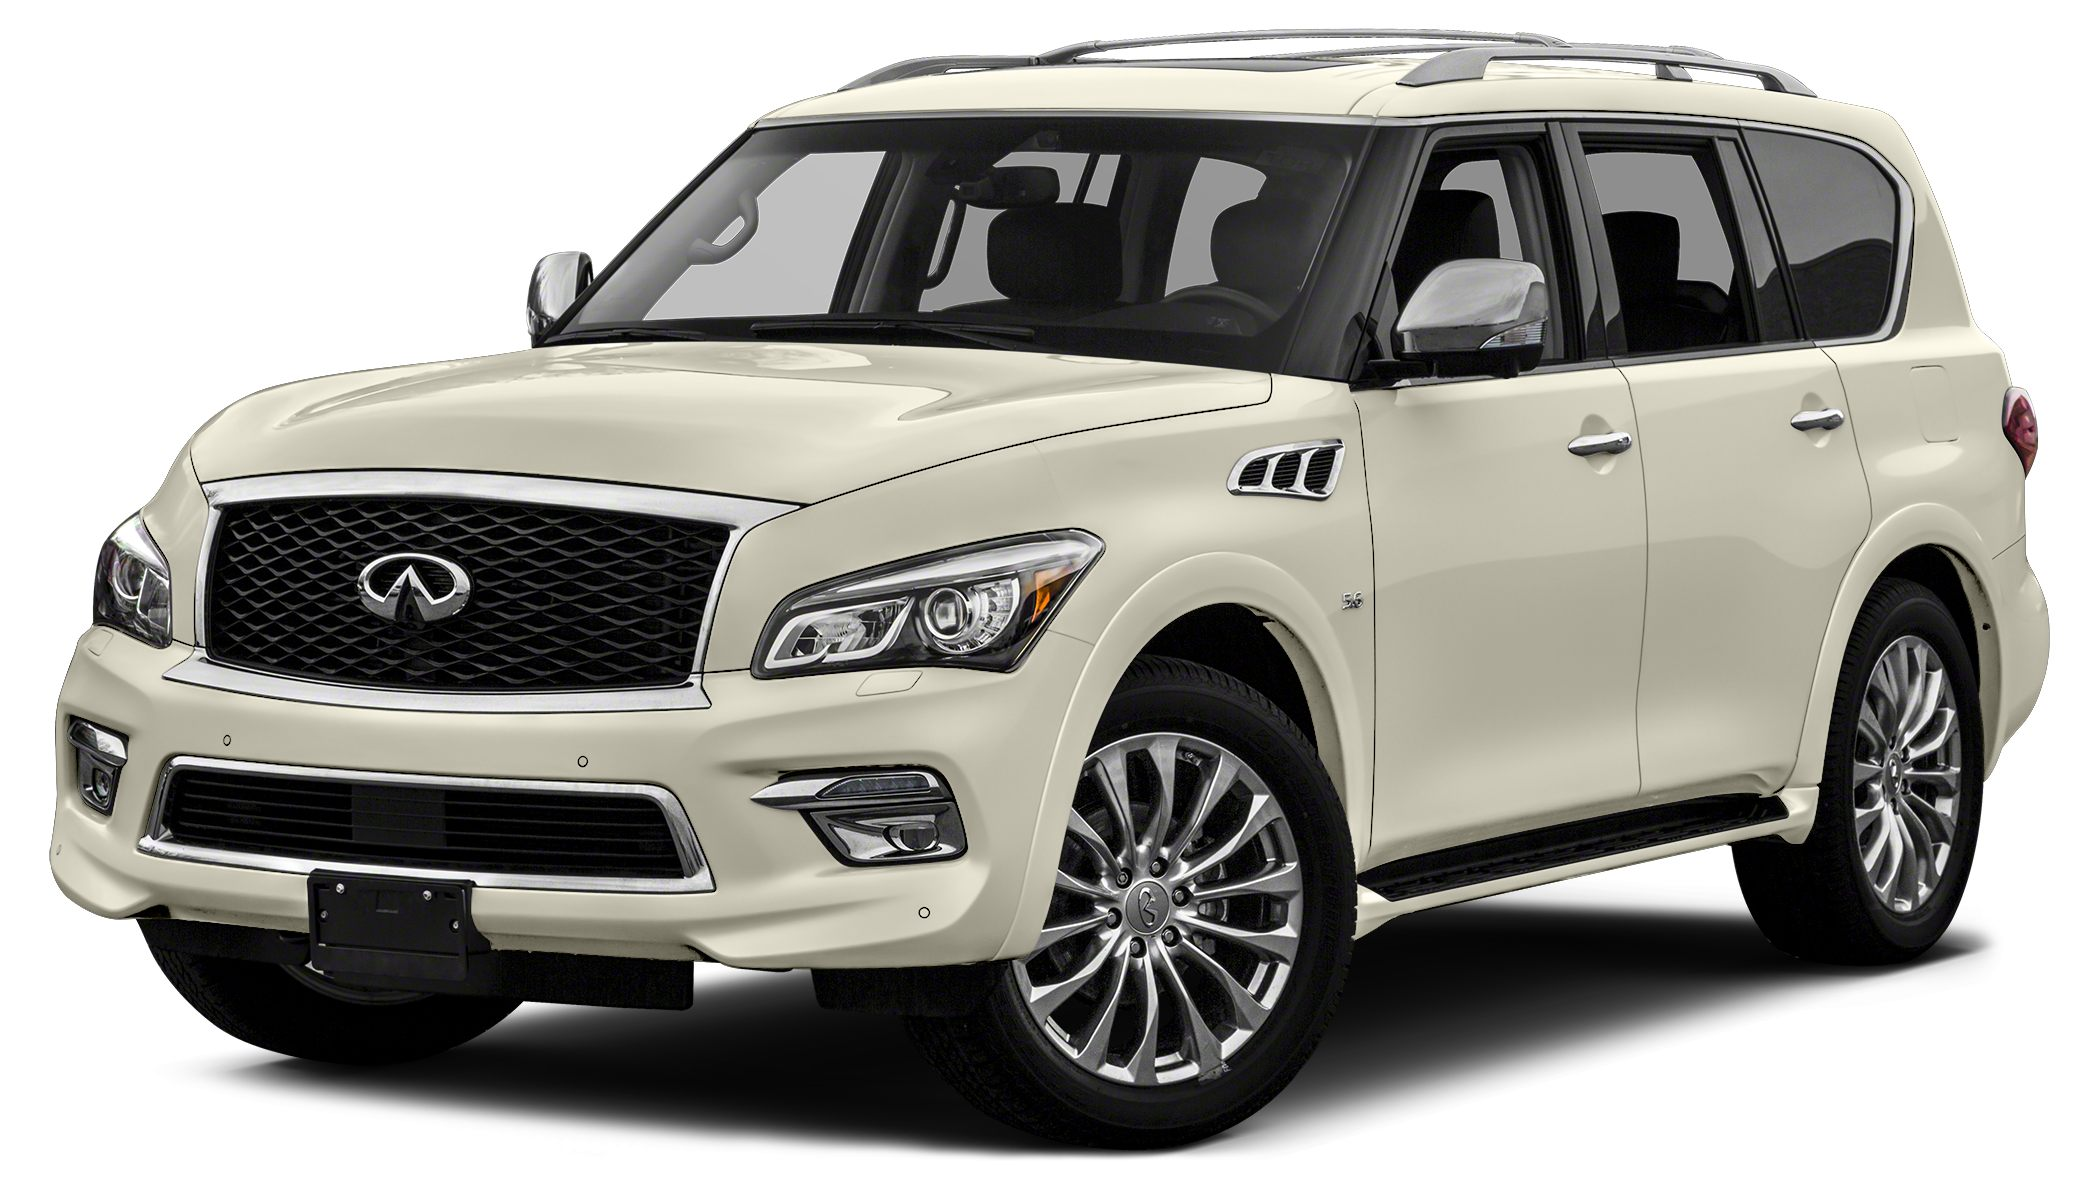 2015 Infiniti QX80 Base  Why Coast Infiniti No one thinks going to a car dealership is a Mile